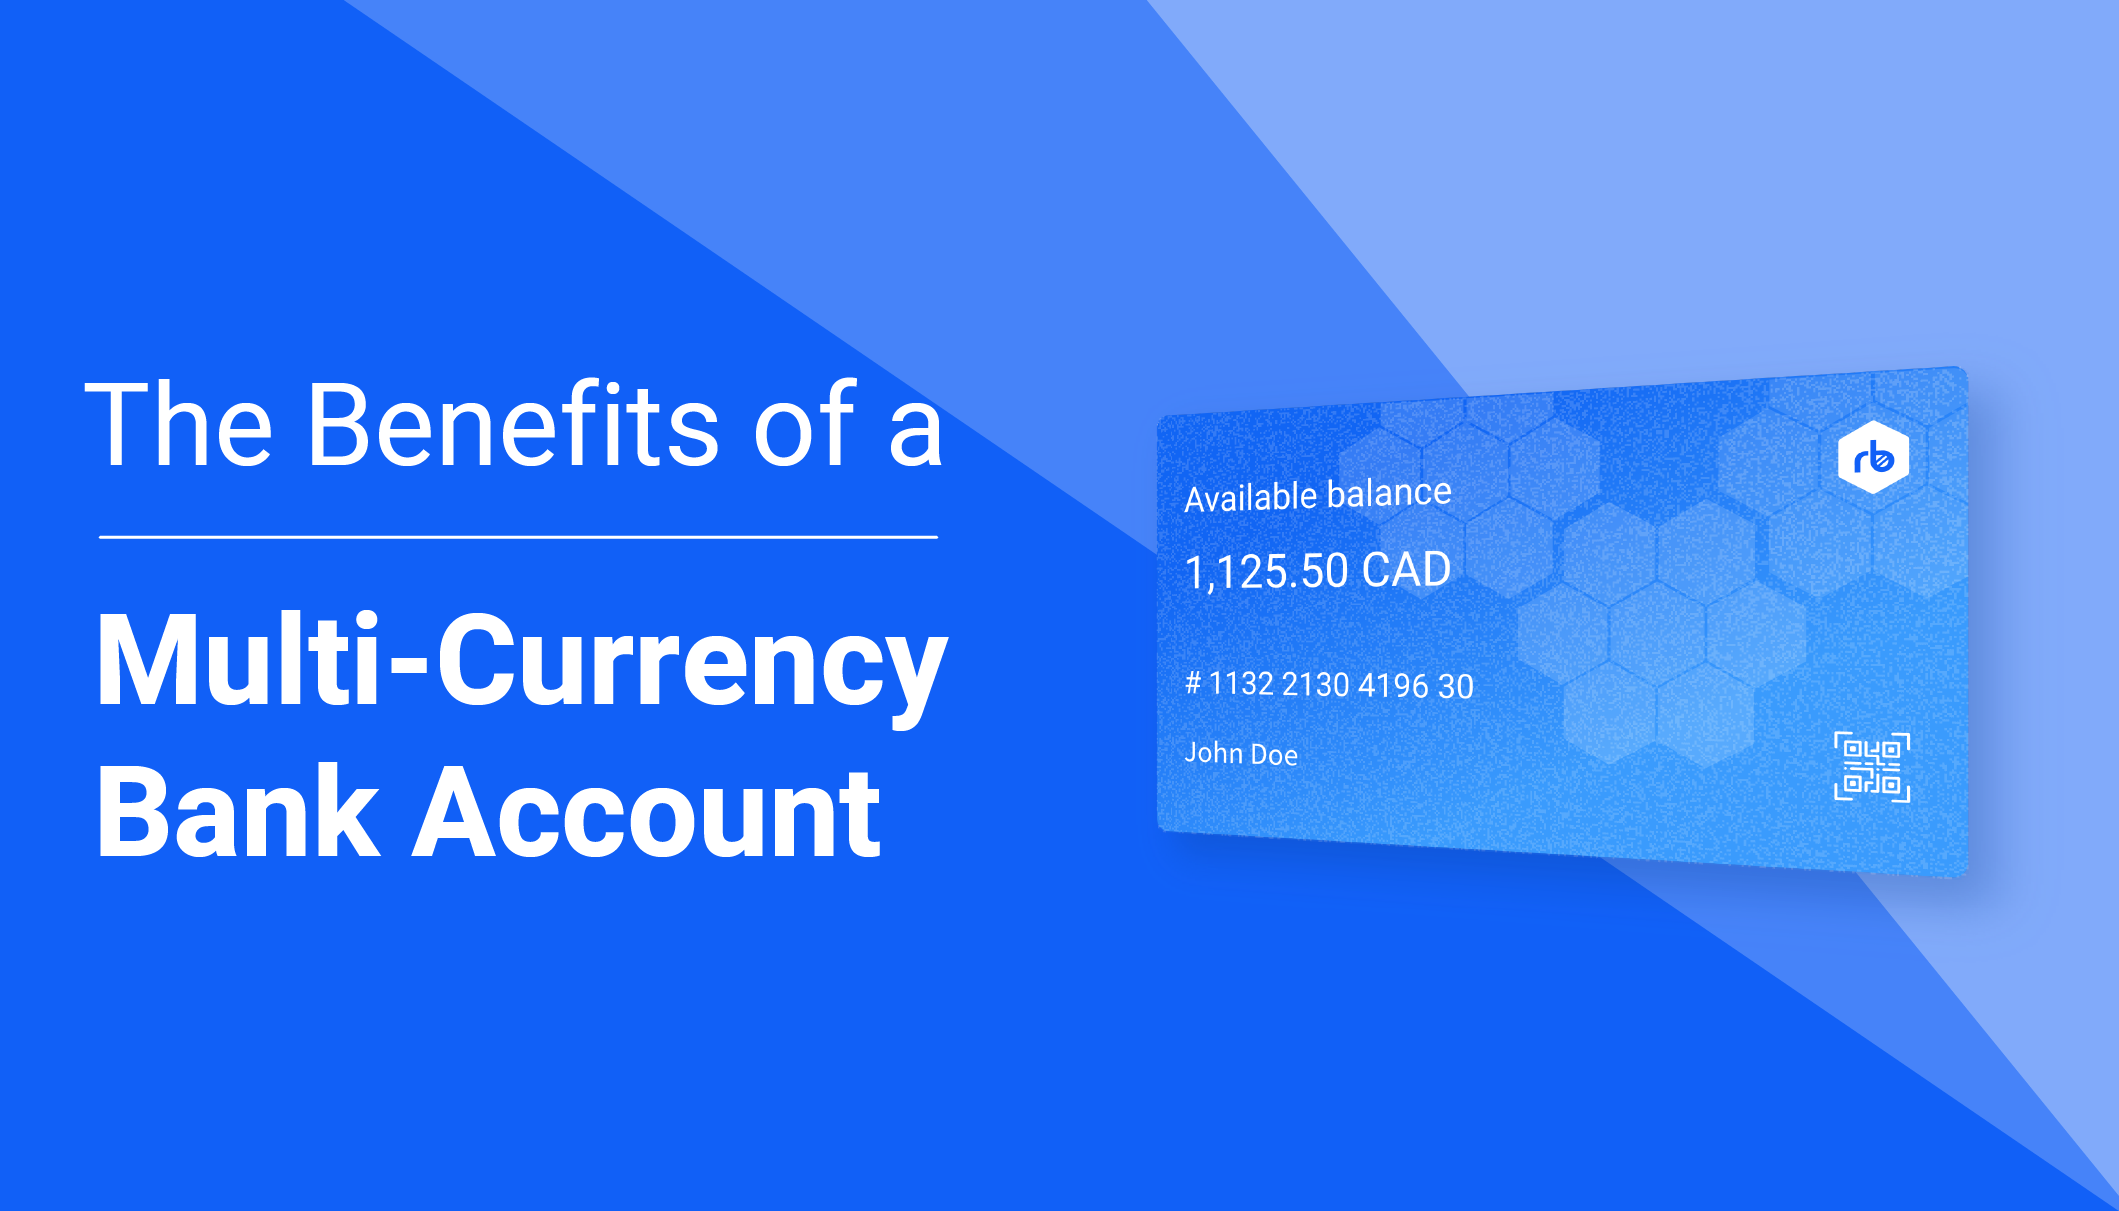 The Benefits of a Multi-Currency Bank Account